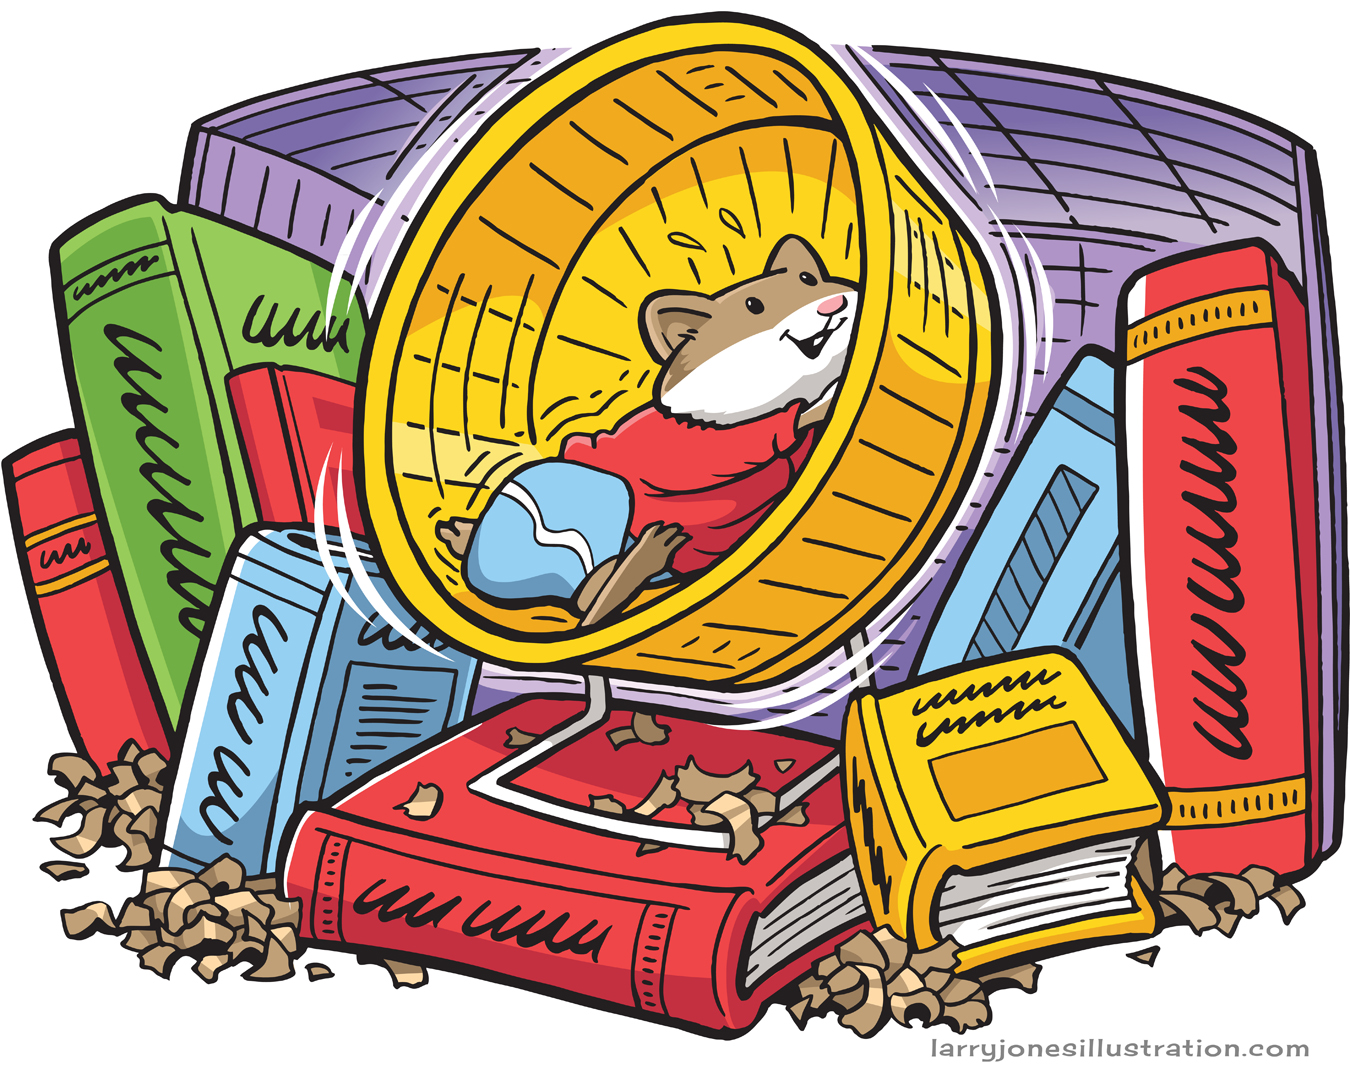 hamster-wheel-books-art.jpg